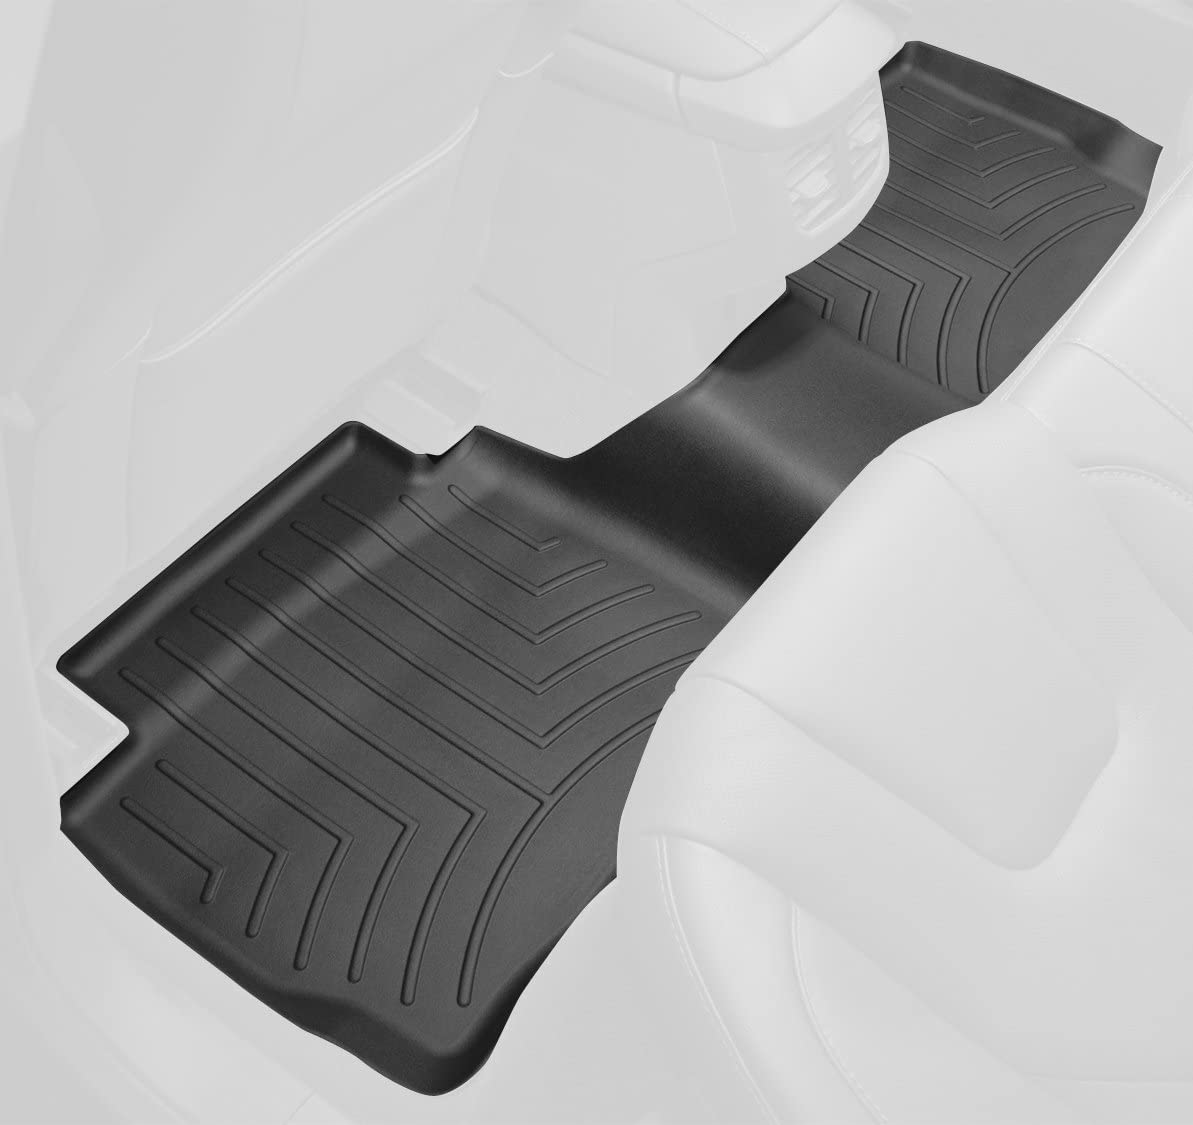 WeatherTech 442973 FloorLiner, Rear, Black 442873